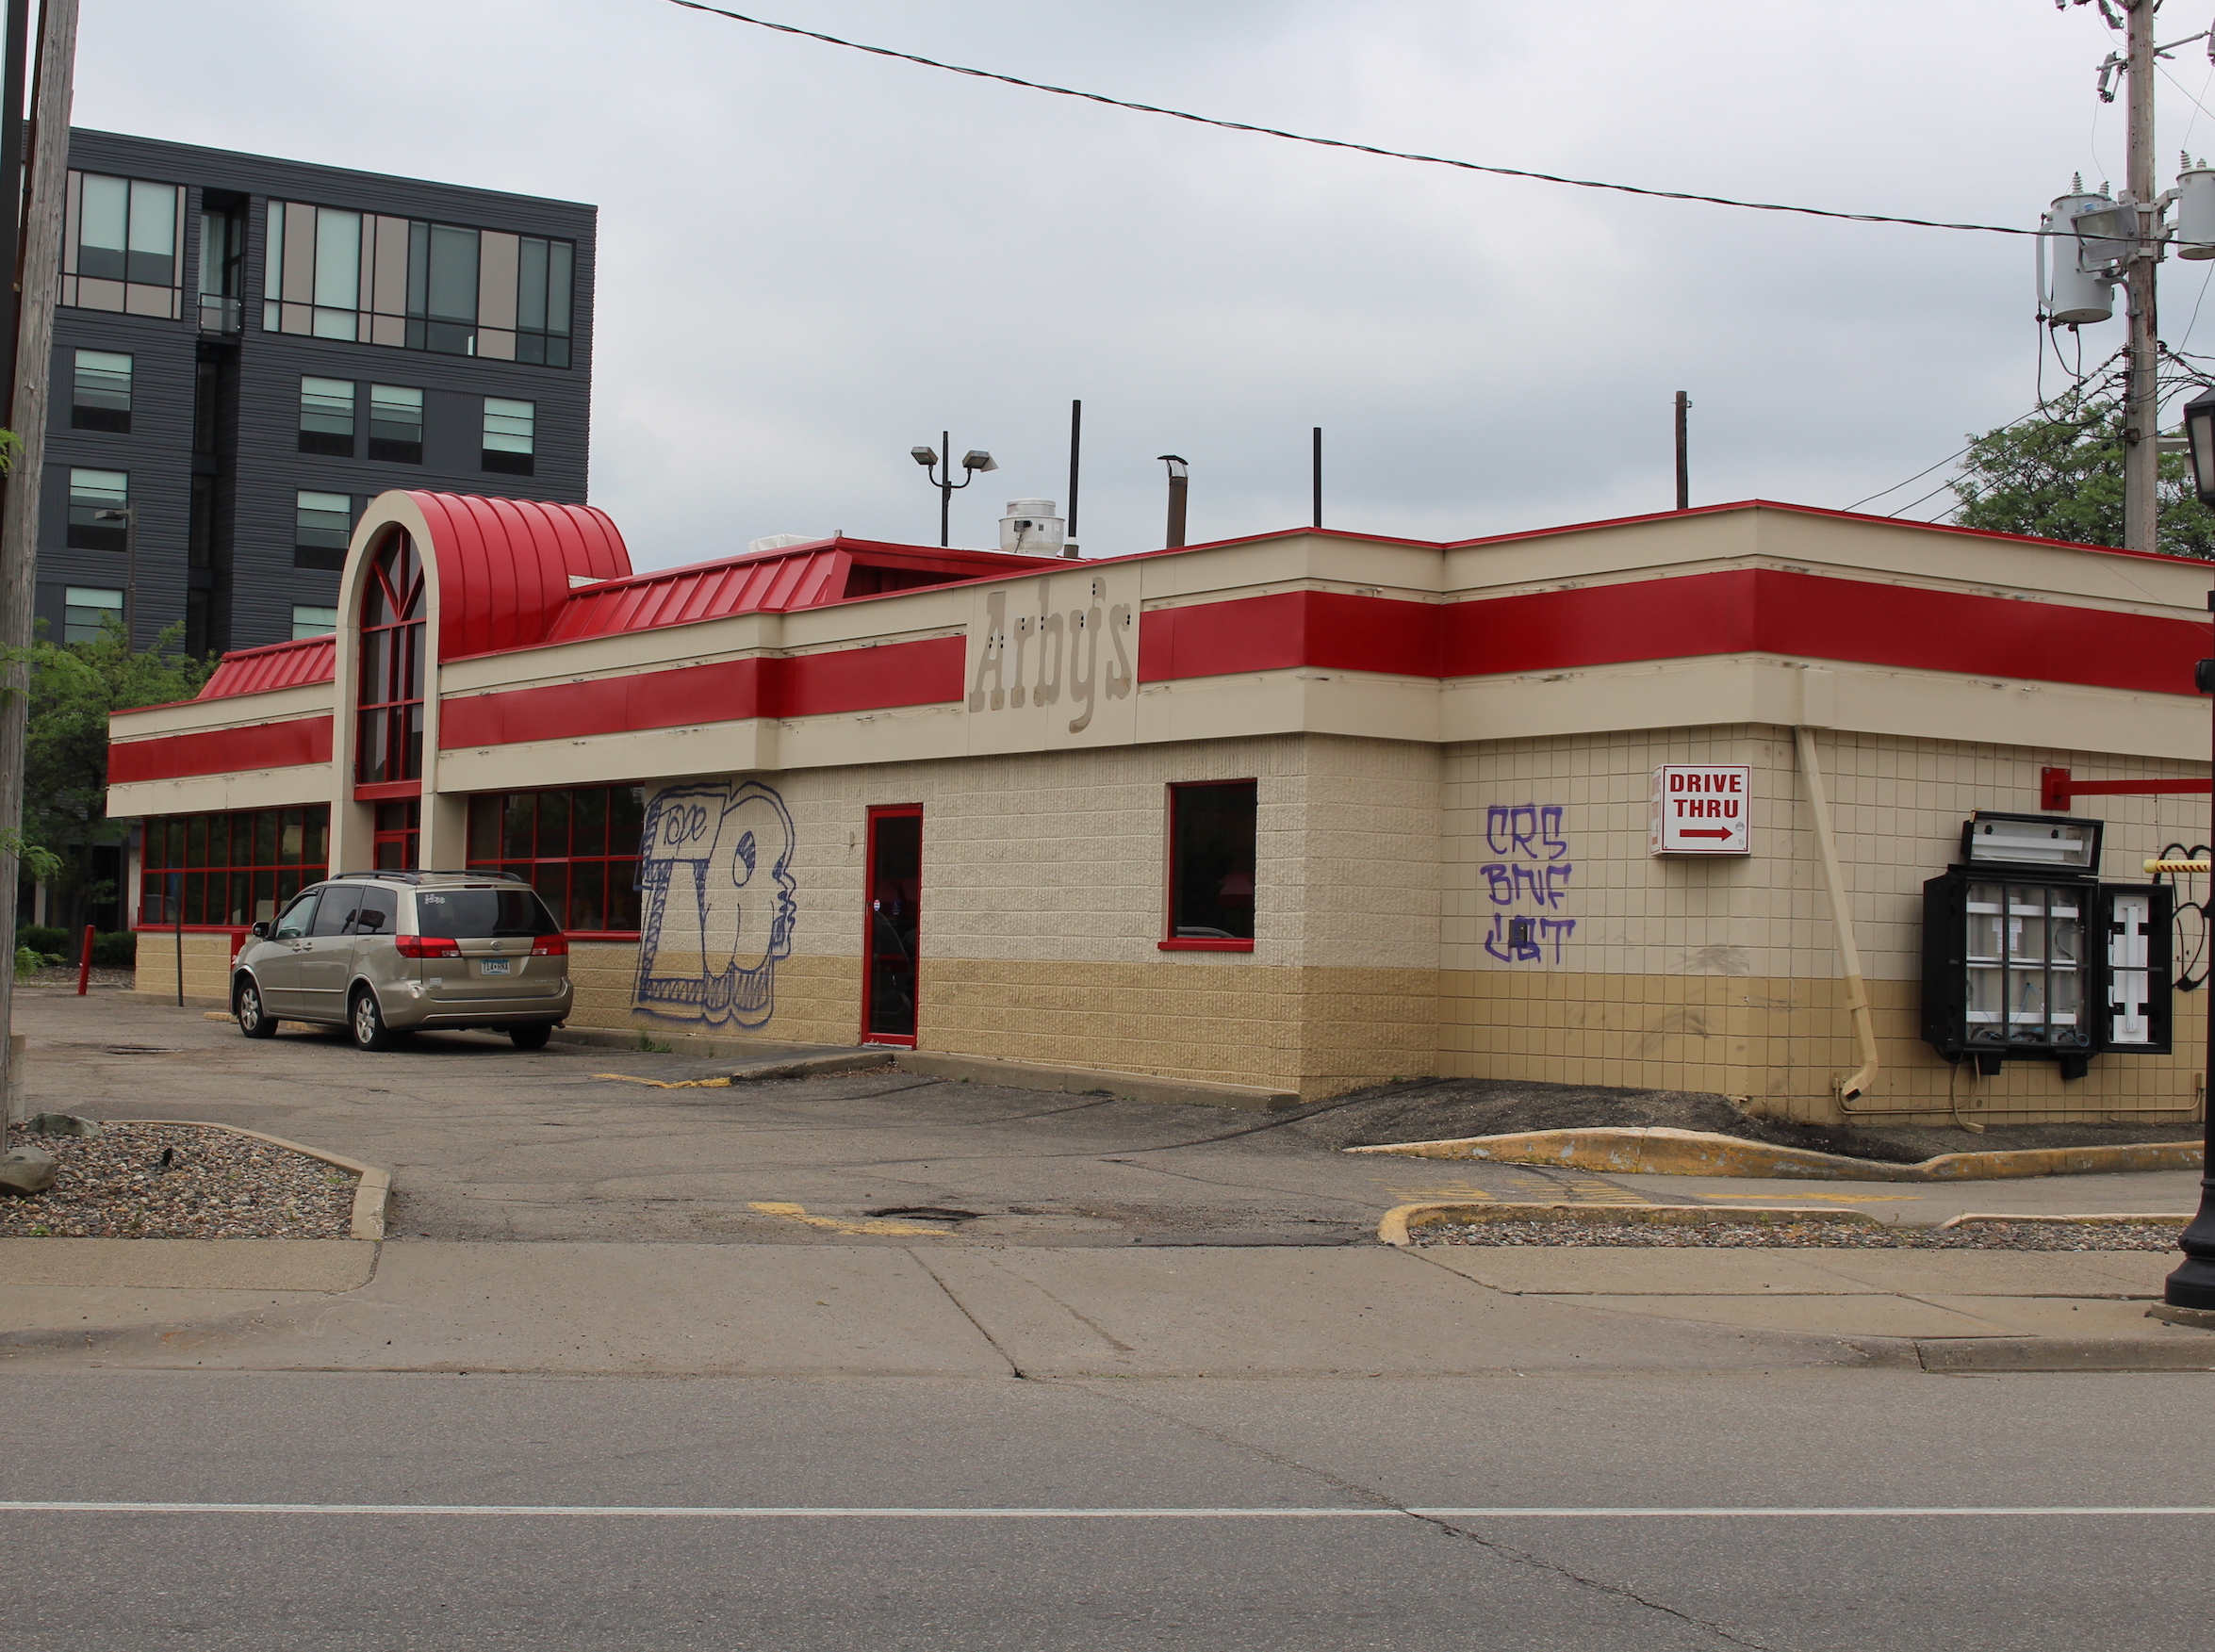 Arby's operated at 1116 W. Lake St. for 47 years before closing this past winter. Reuter Walton plans to demolish the restaurant and build a mixed-use apartment building on the site.